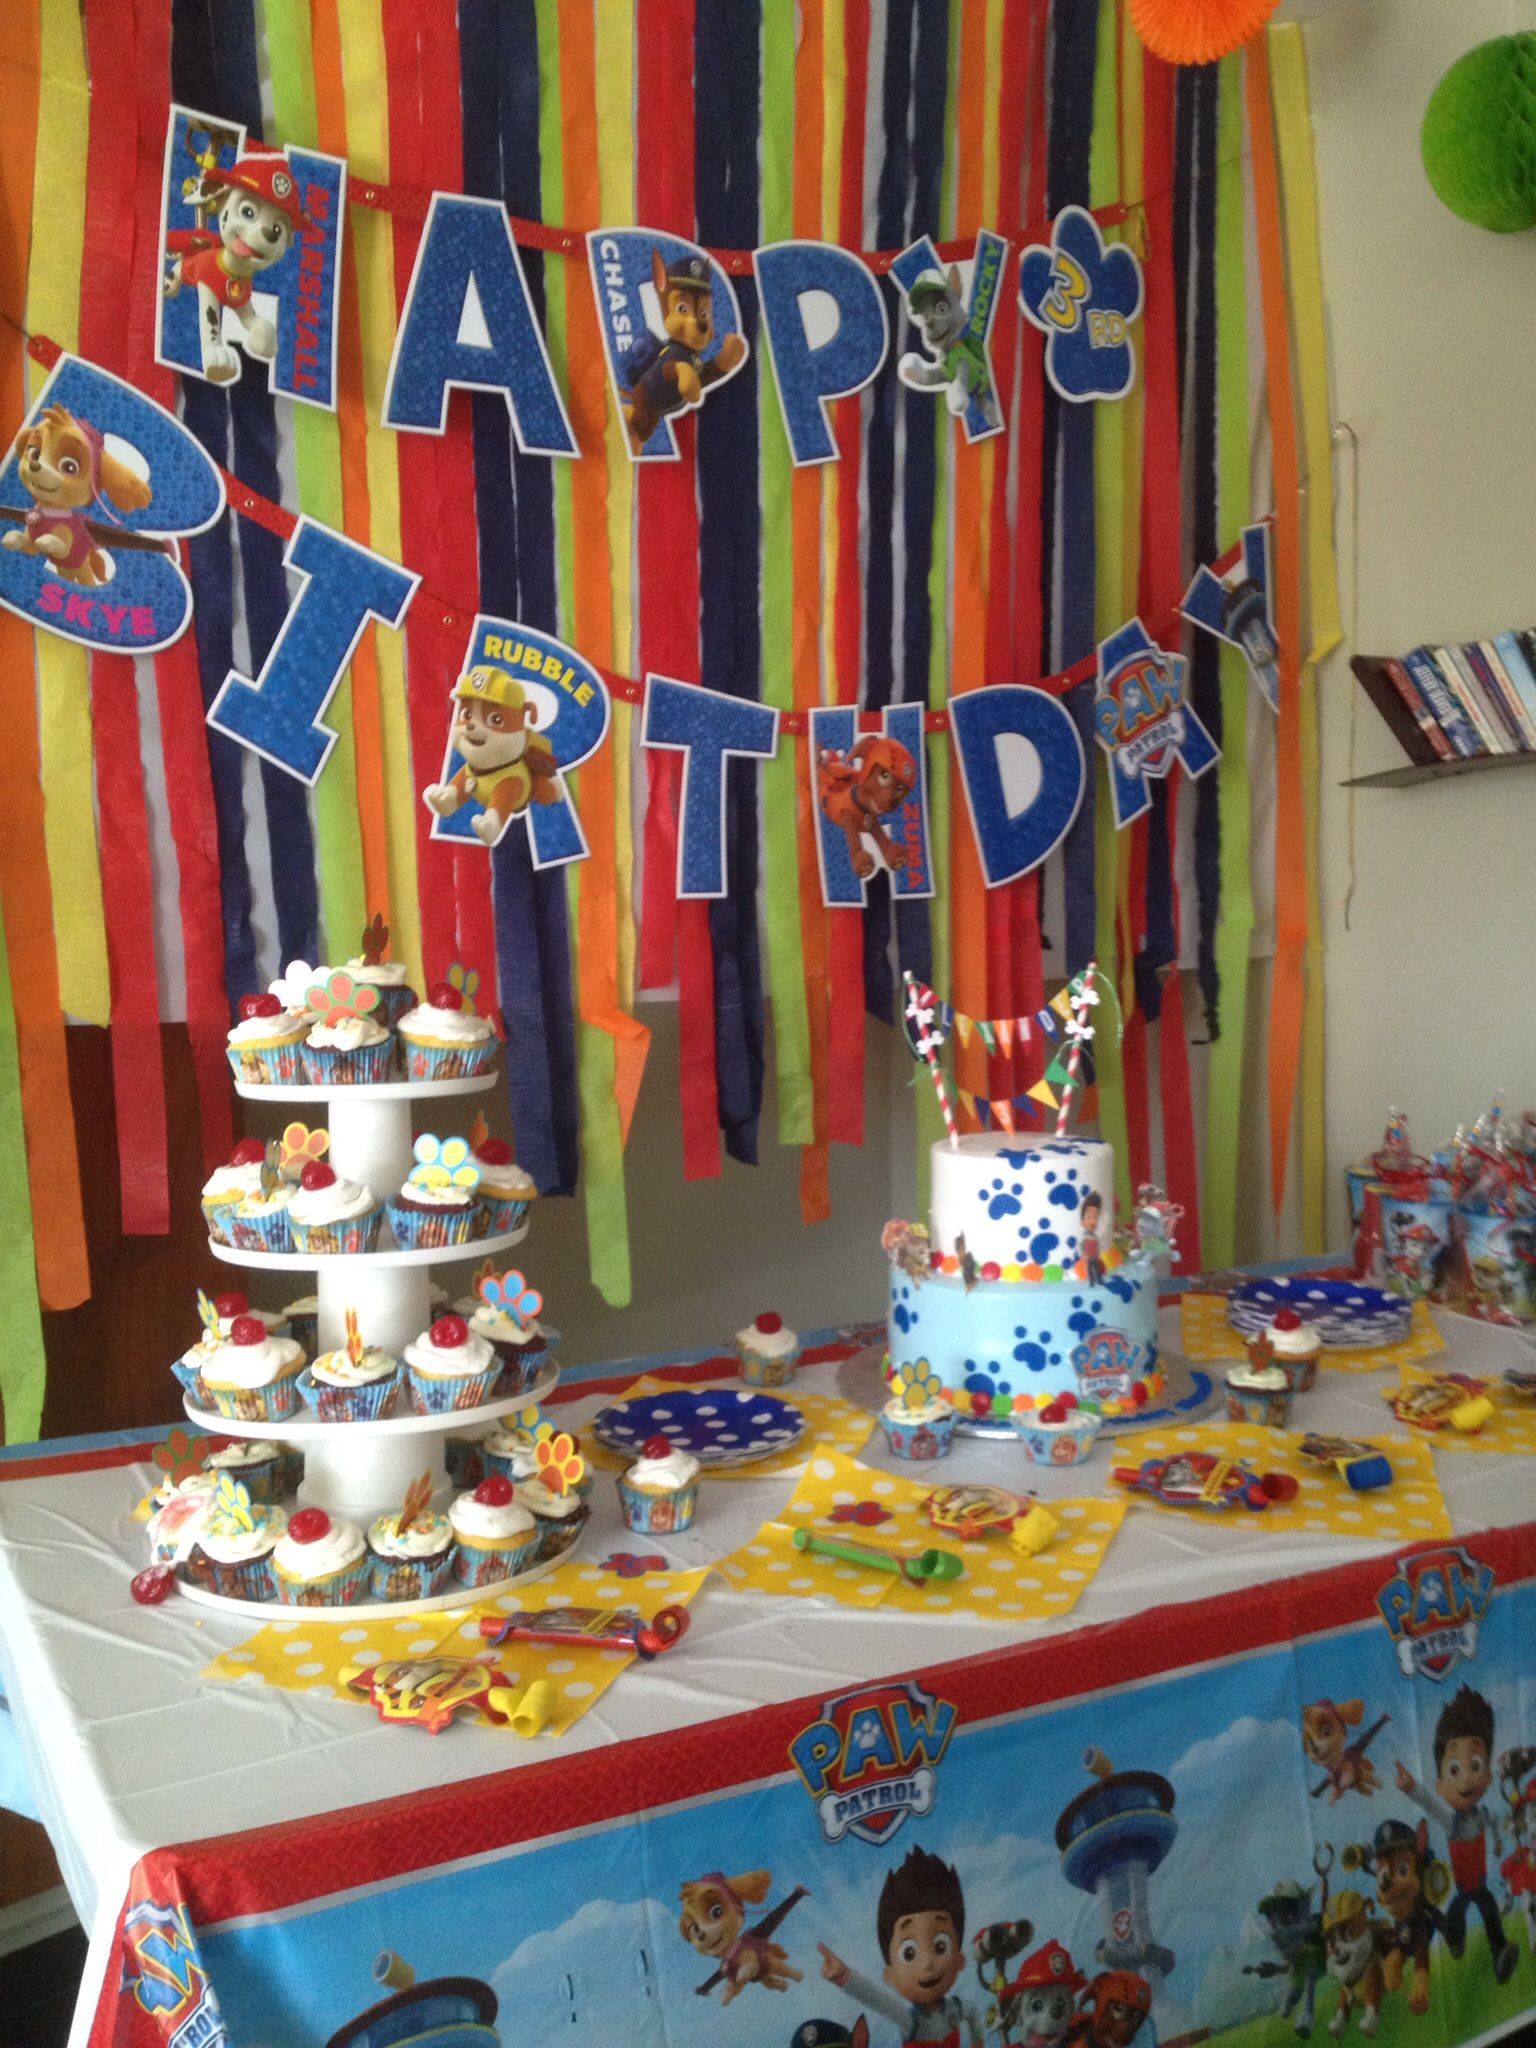 Paw Patrol Party Paw Patrol Cake Paw Patrol Cutouts And Cake Banner By The Party Foxx Paw Prints D Paw Patrol Decorations Paw Patrol Party Paw Patrol Gifts